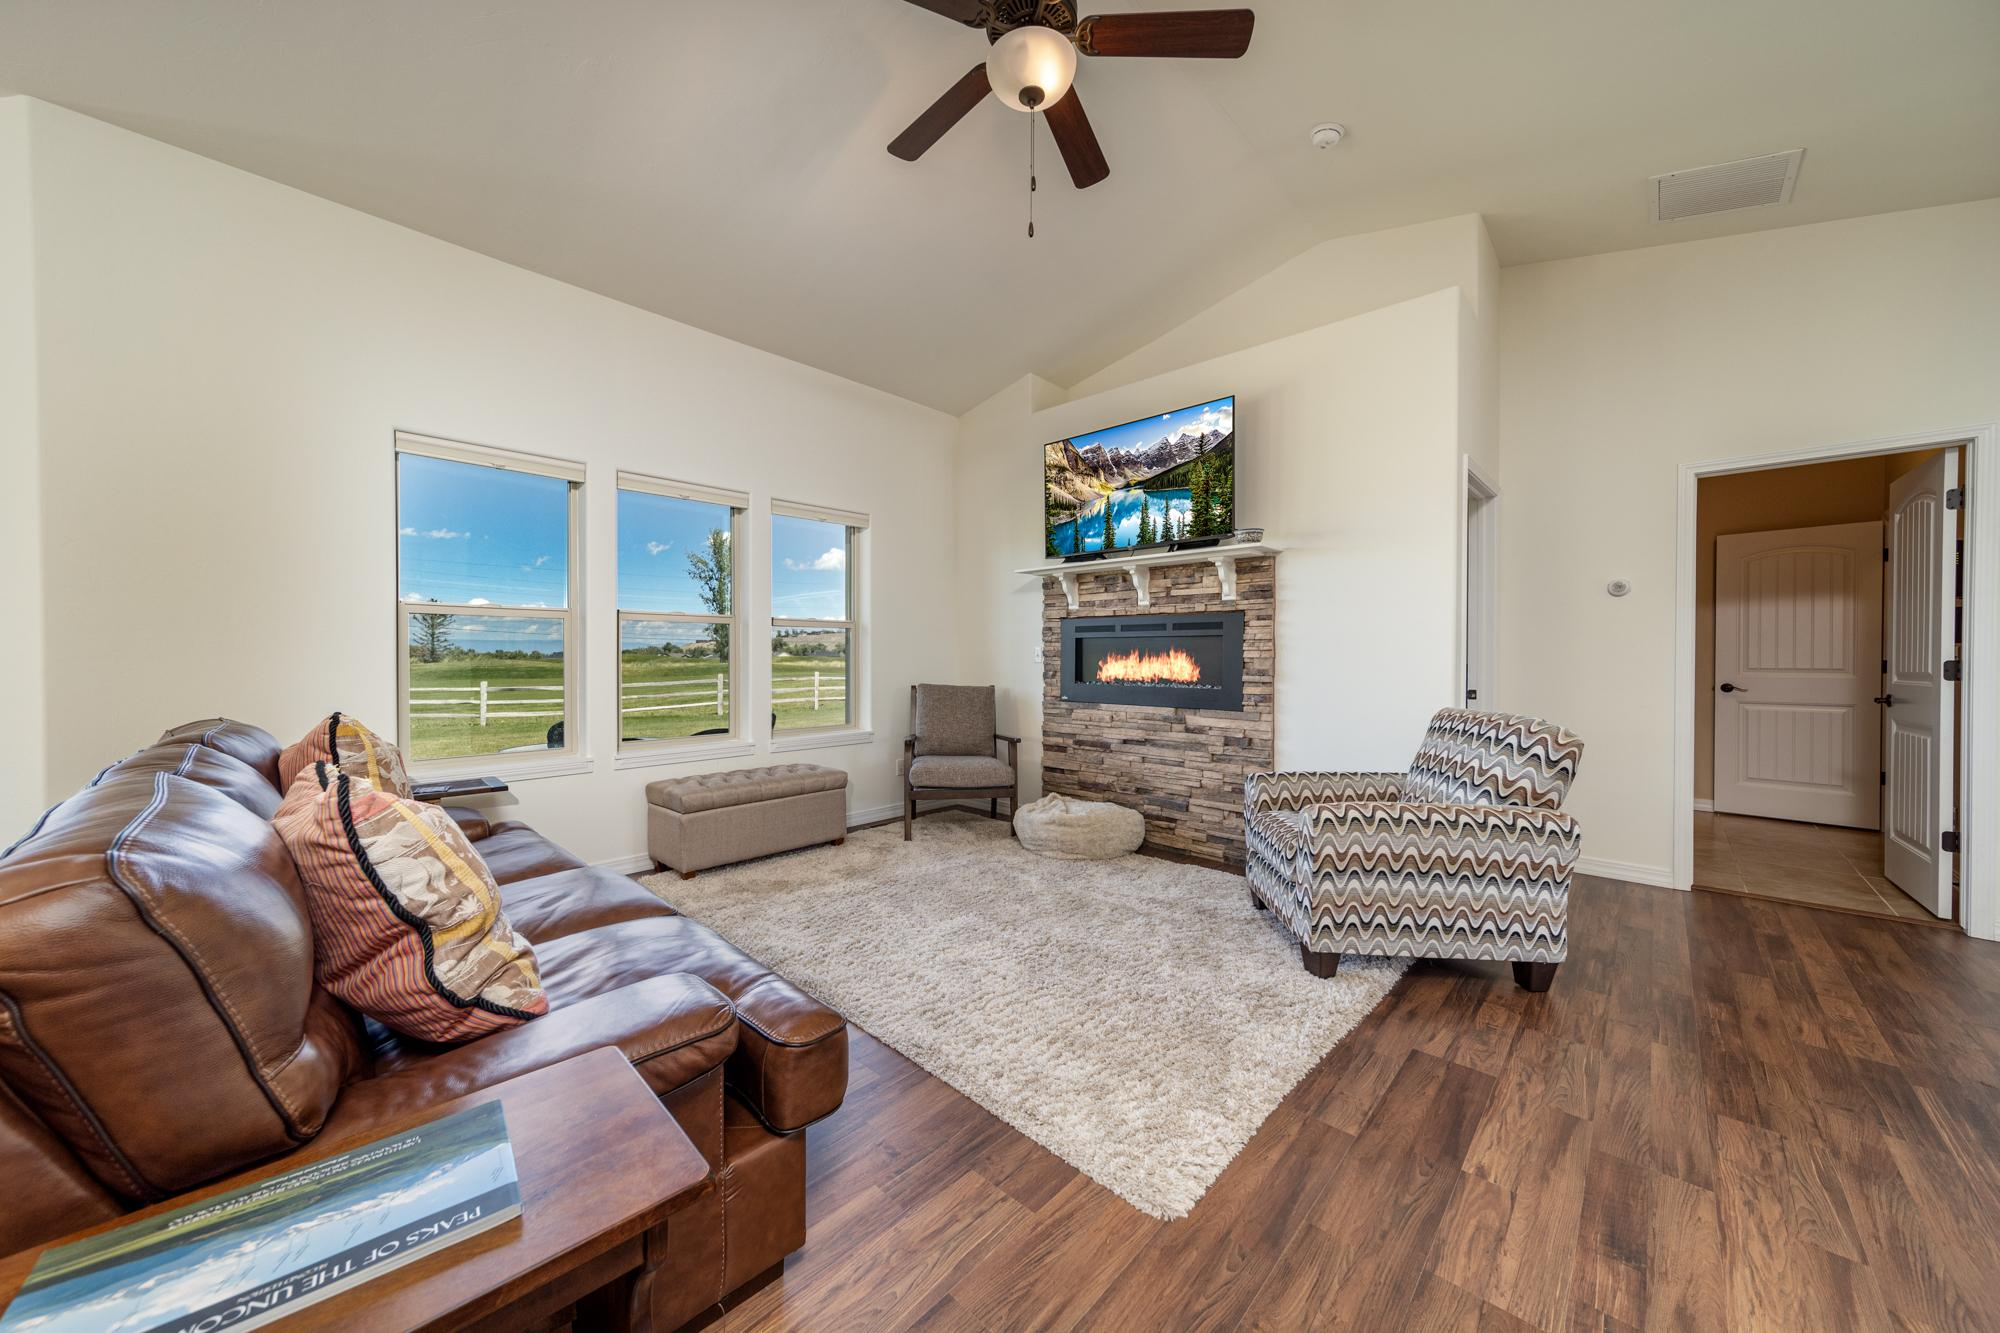 Living Room with Natural Lighting - 597 Cobble Dr Montrose, CO - Atha Team MLS Colorado